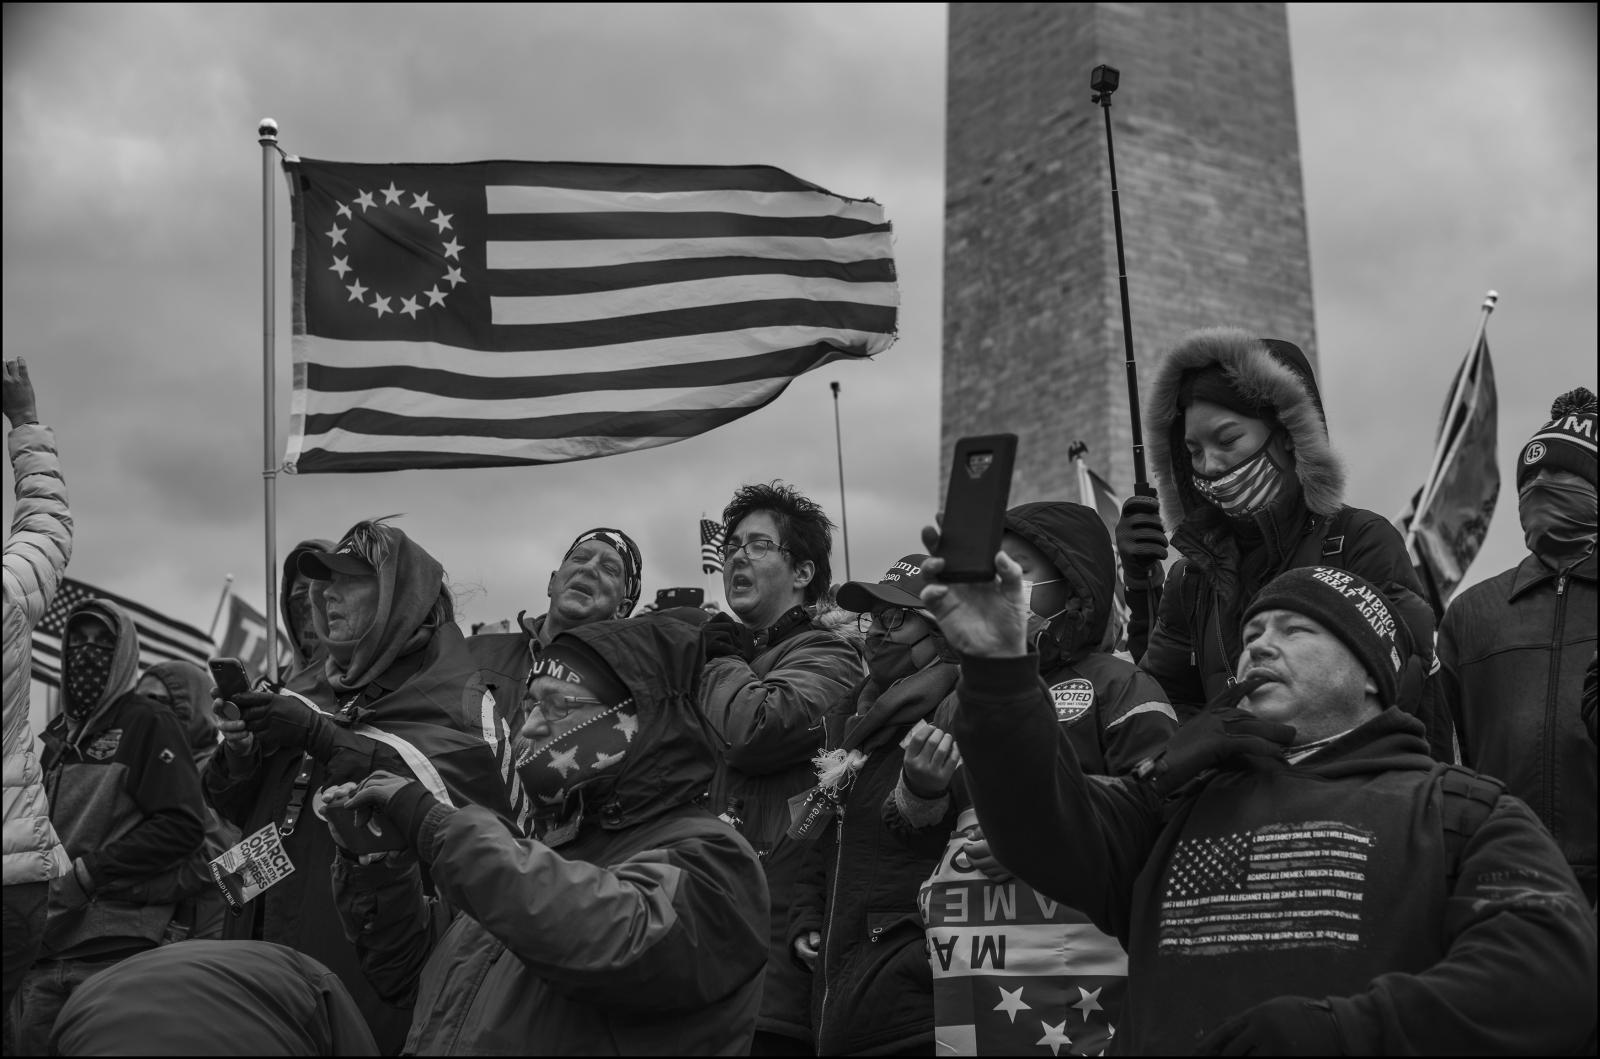 At the Washington Monument, supporters react as President of the United States speaks to overturn the November 2020 elections. Washington D.C. 01/06/21.